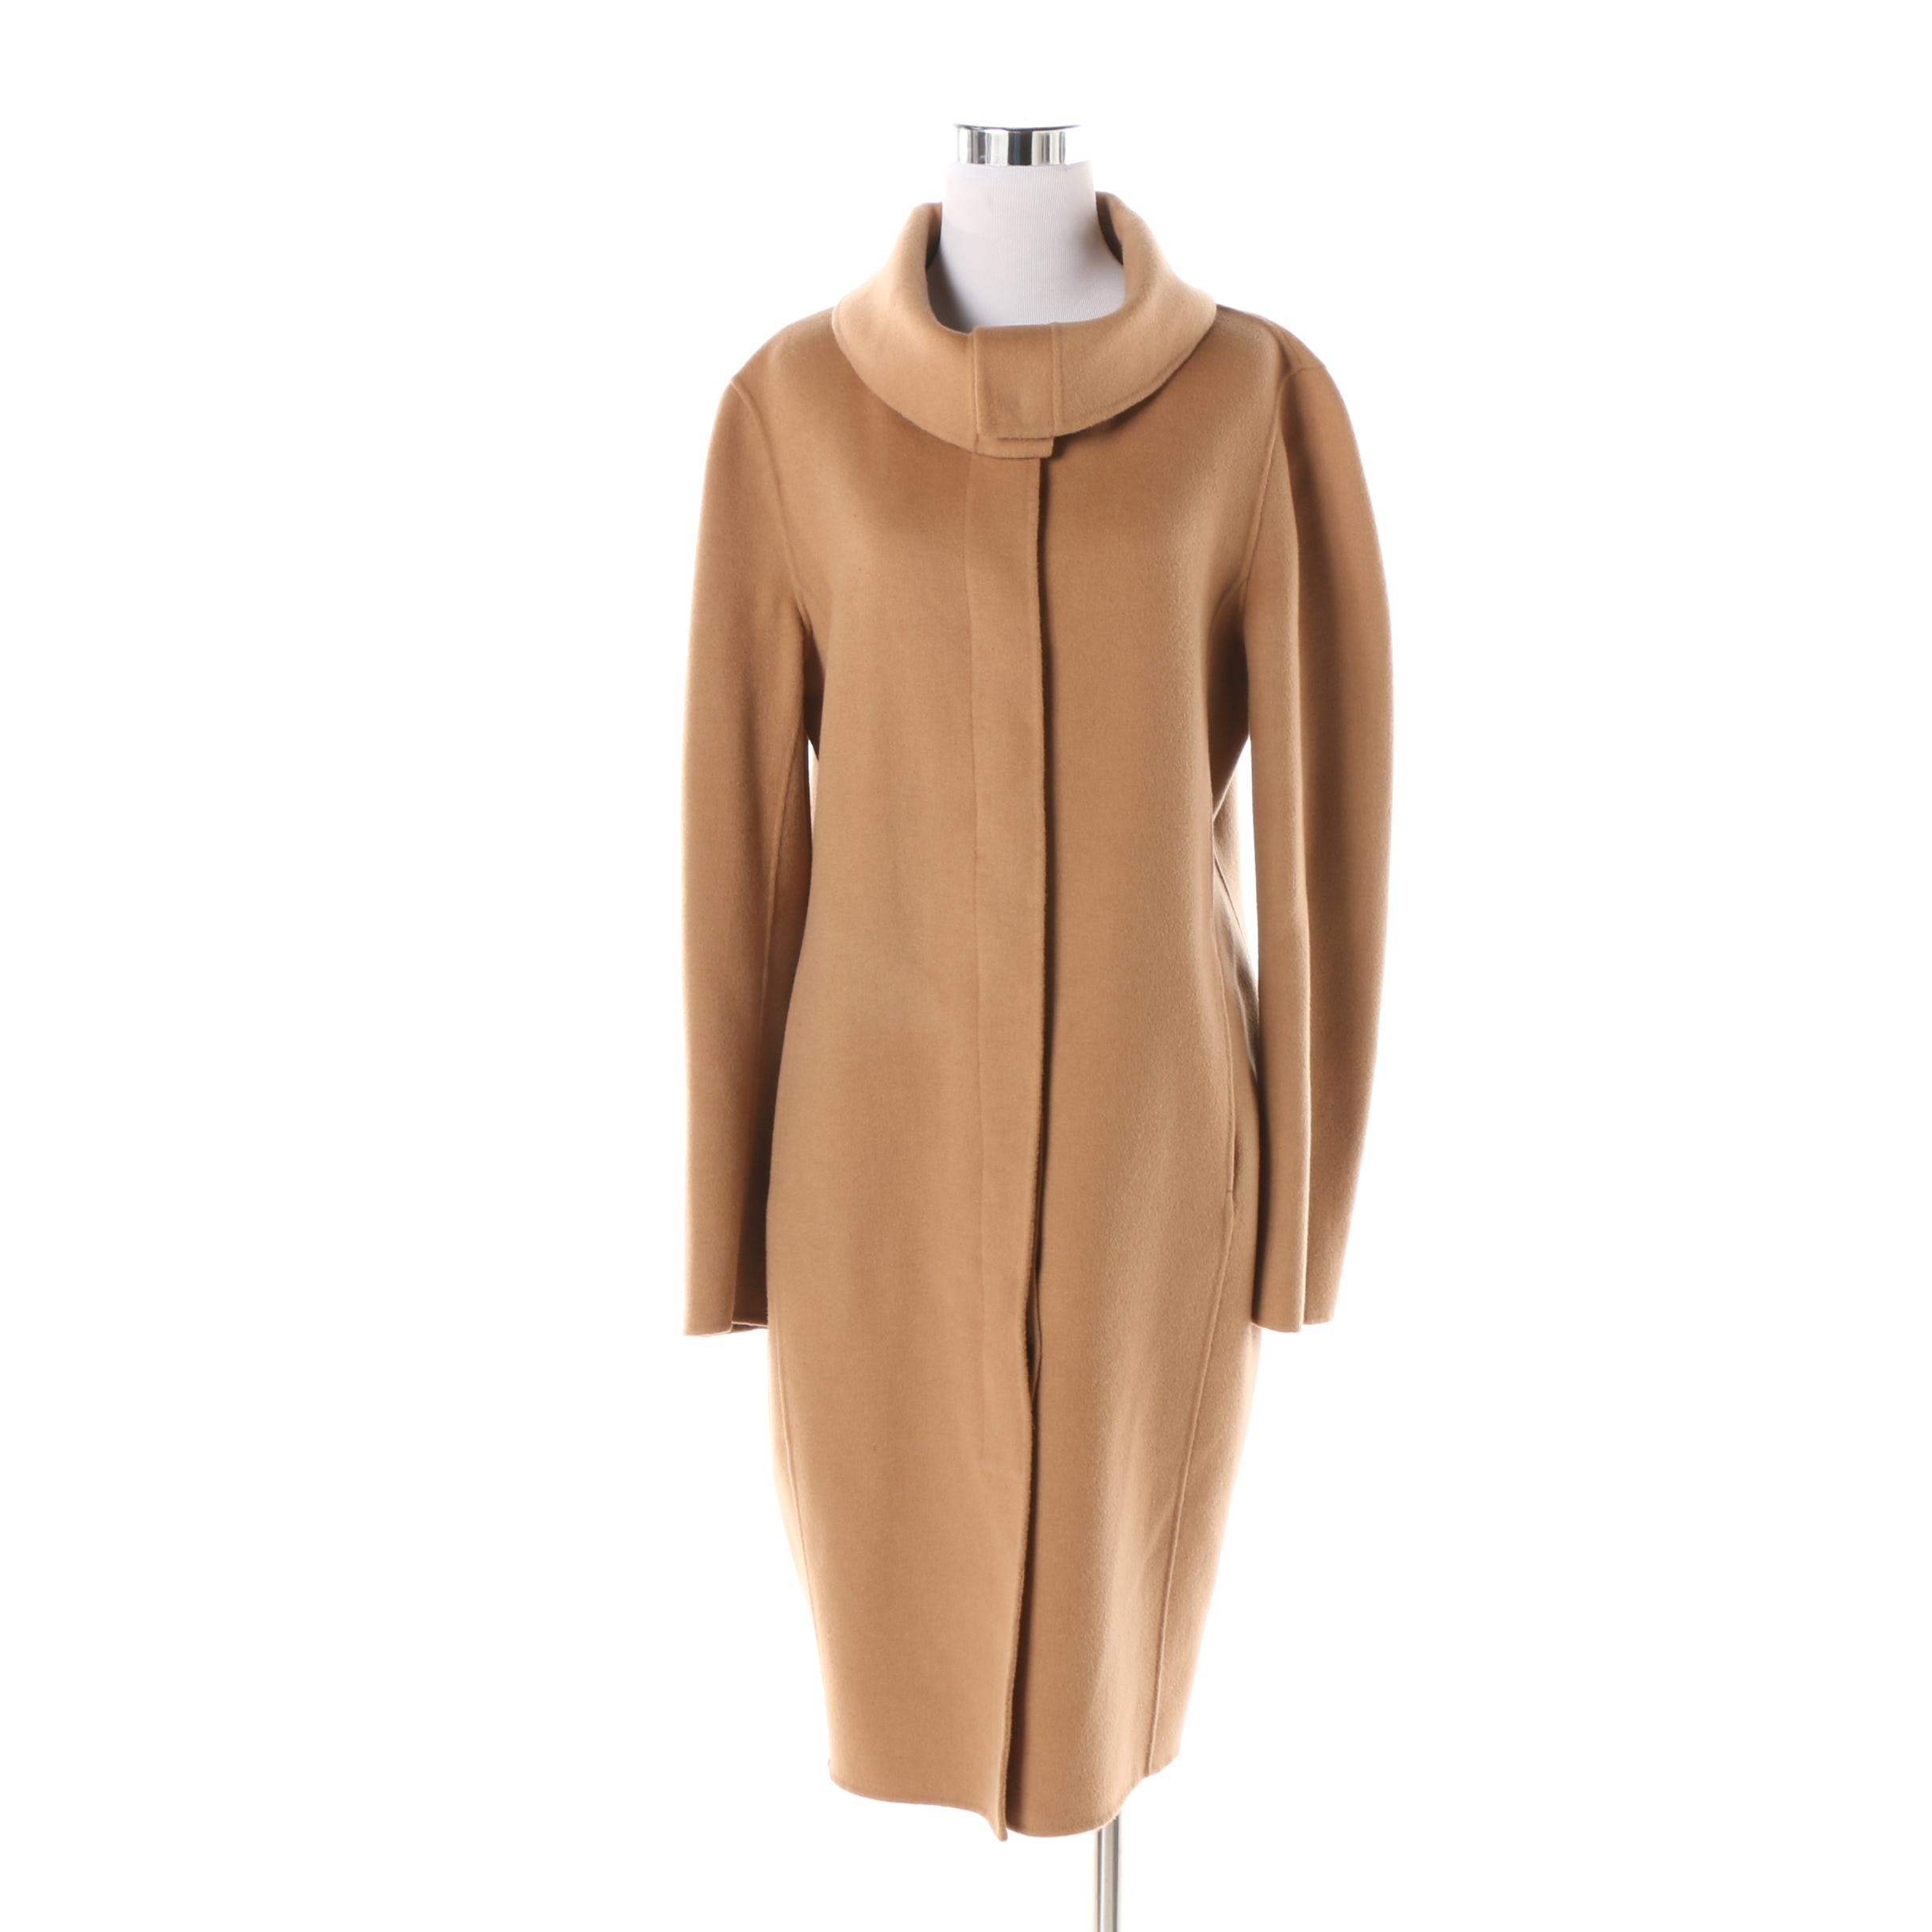 Women's Lafayette 148 New York Wool and Angora Blend Coat